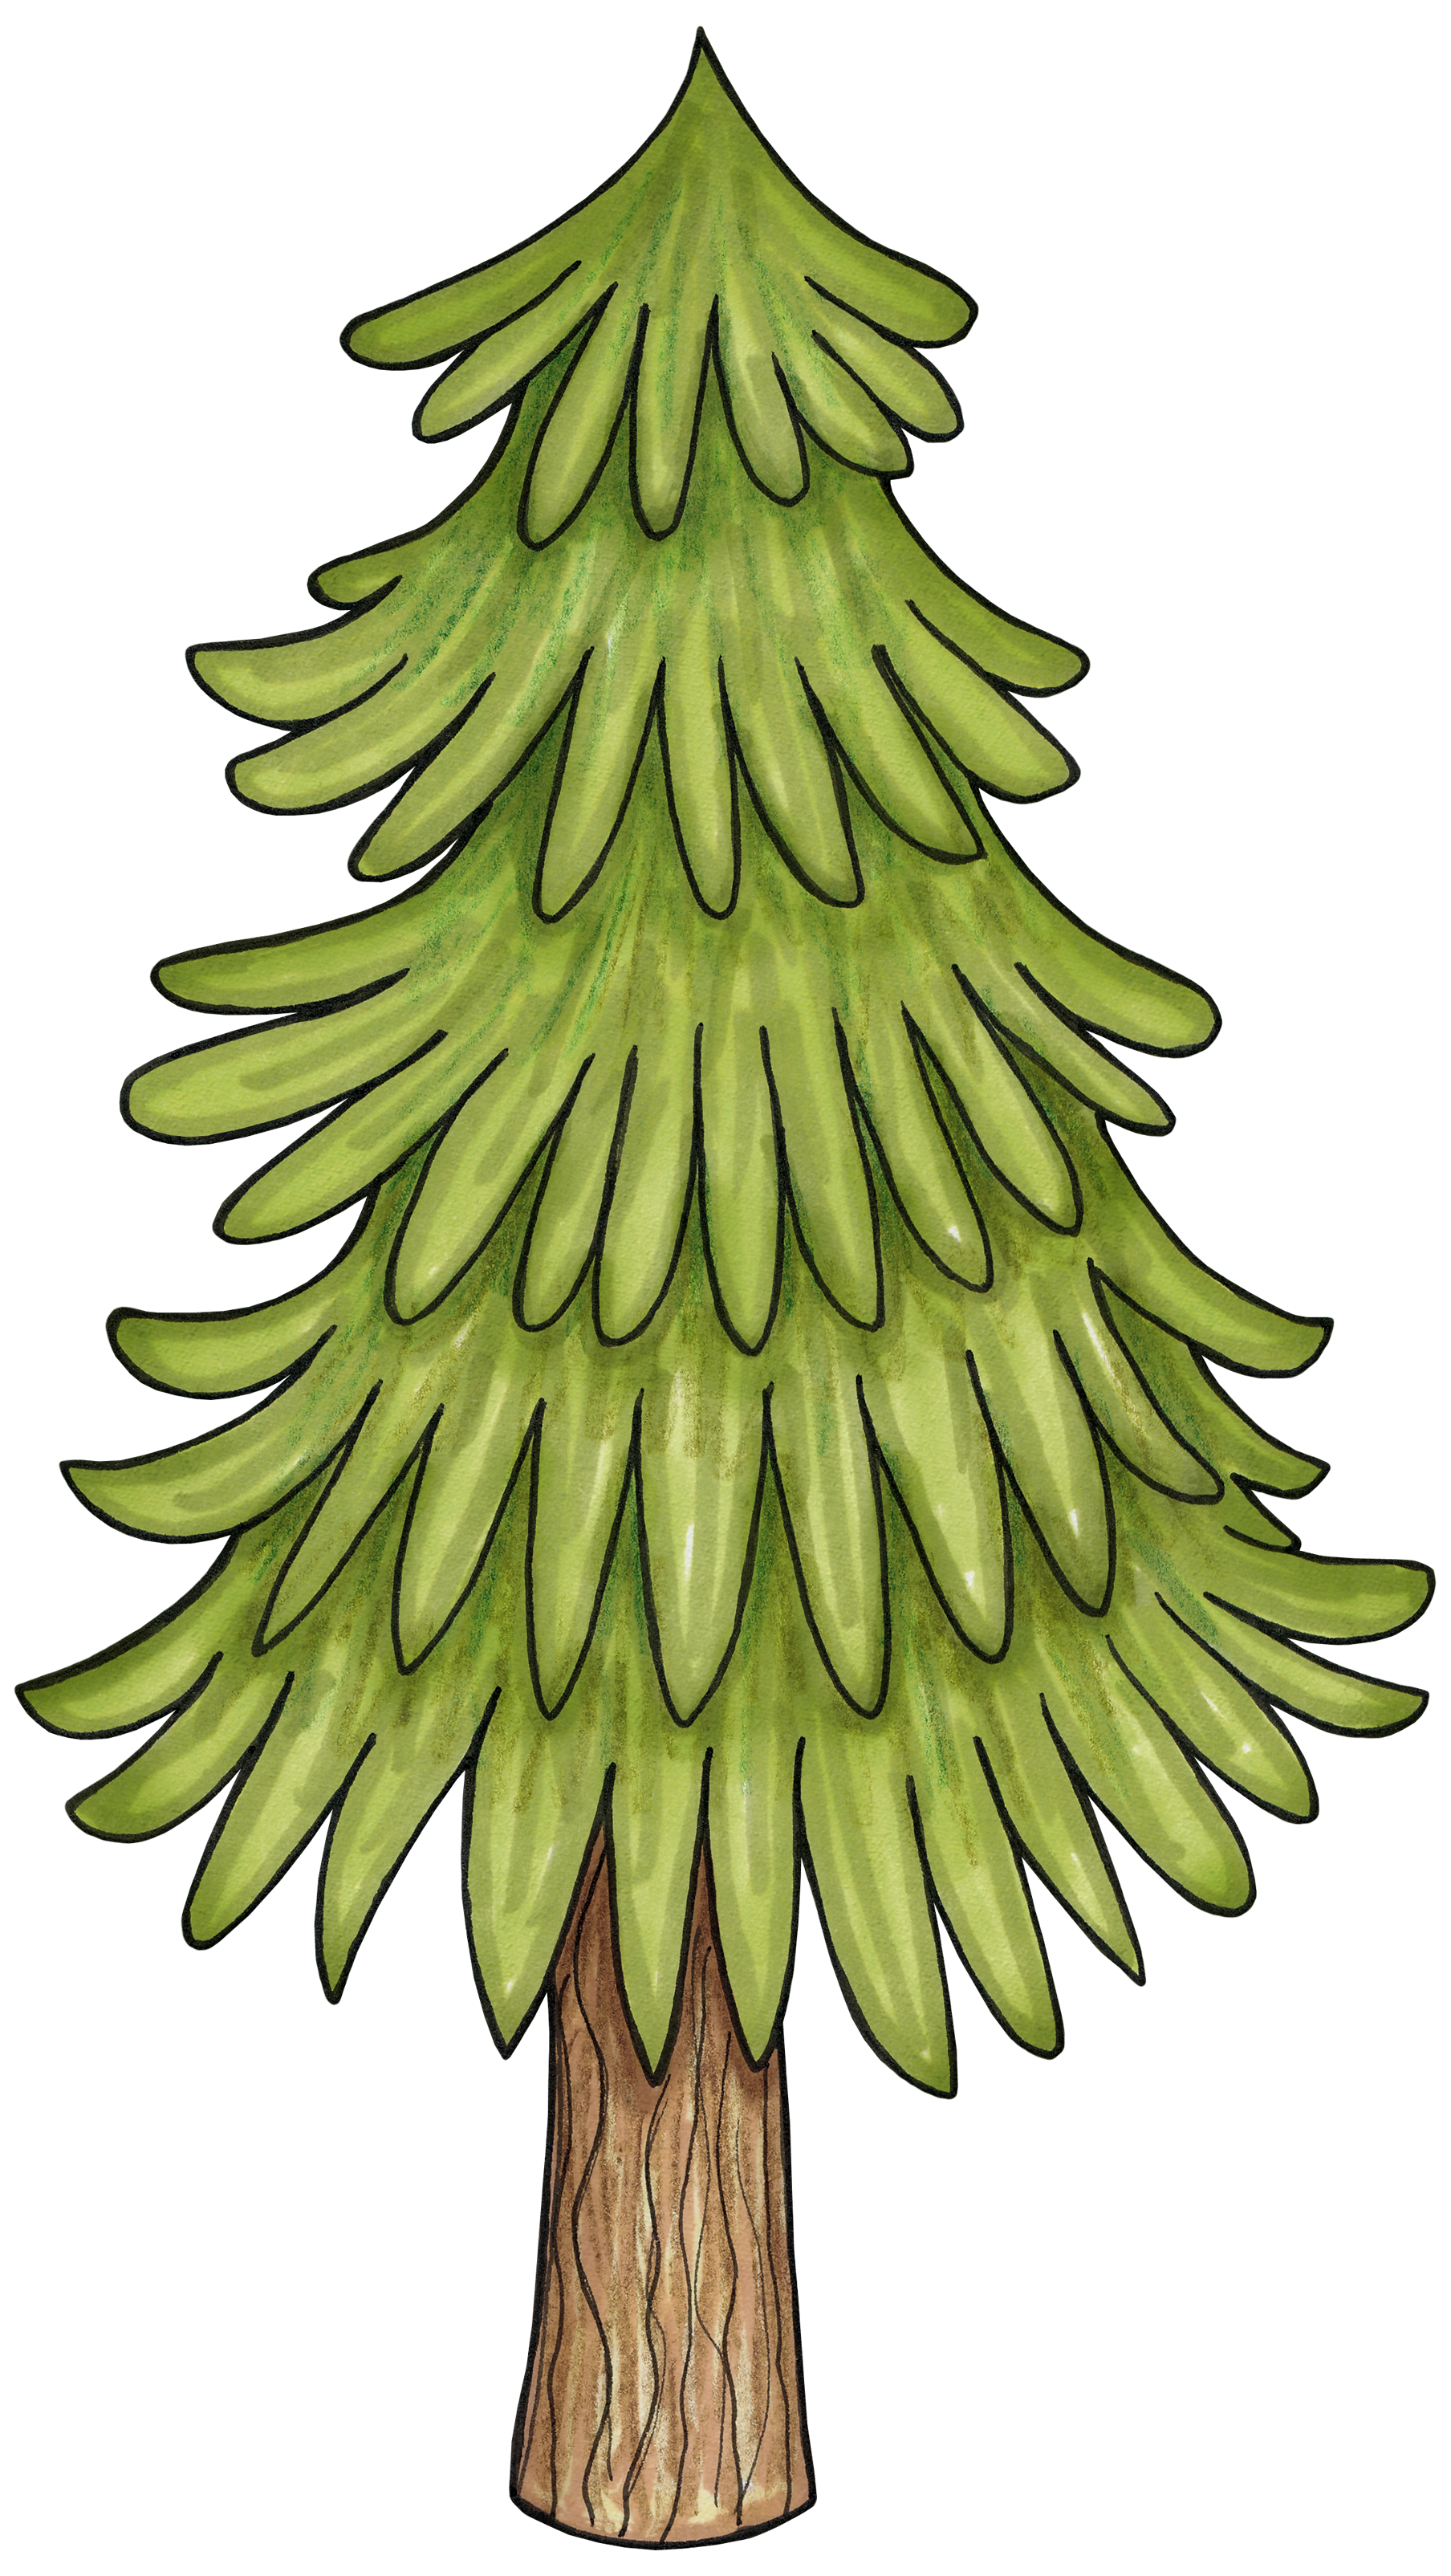 Tree clipart forest tree #15